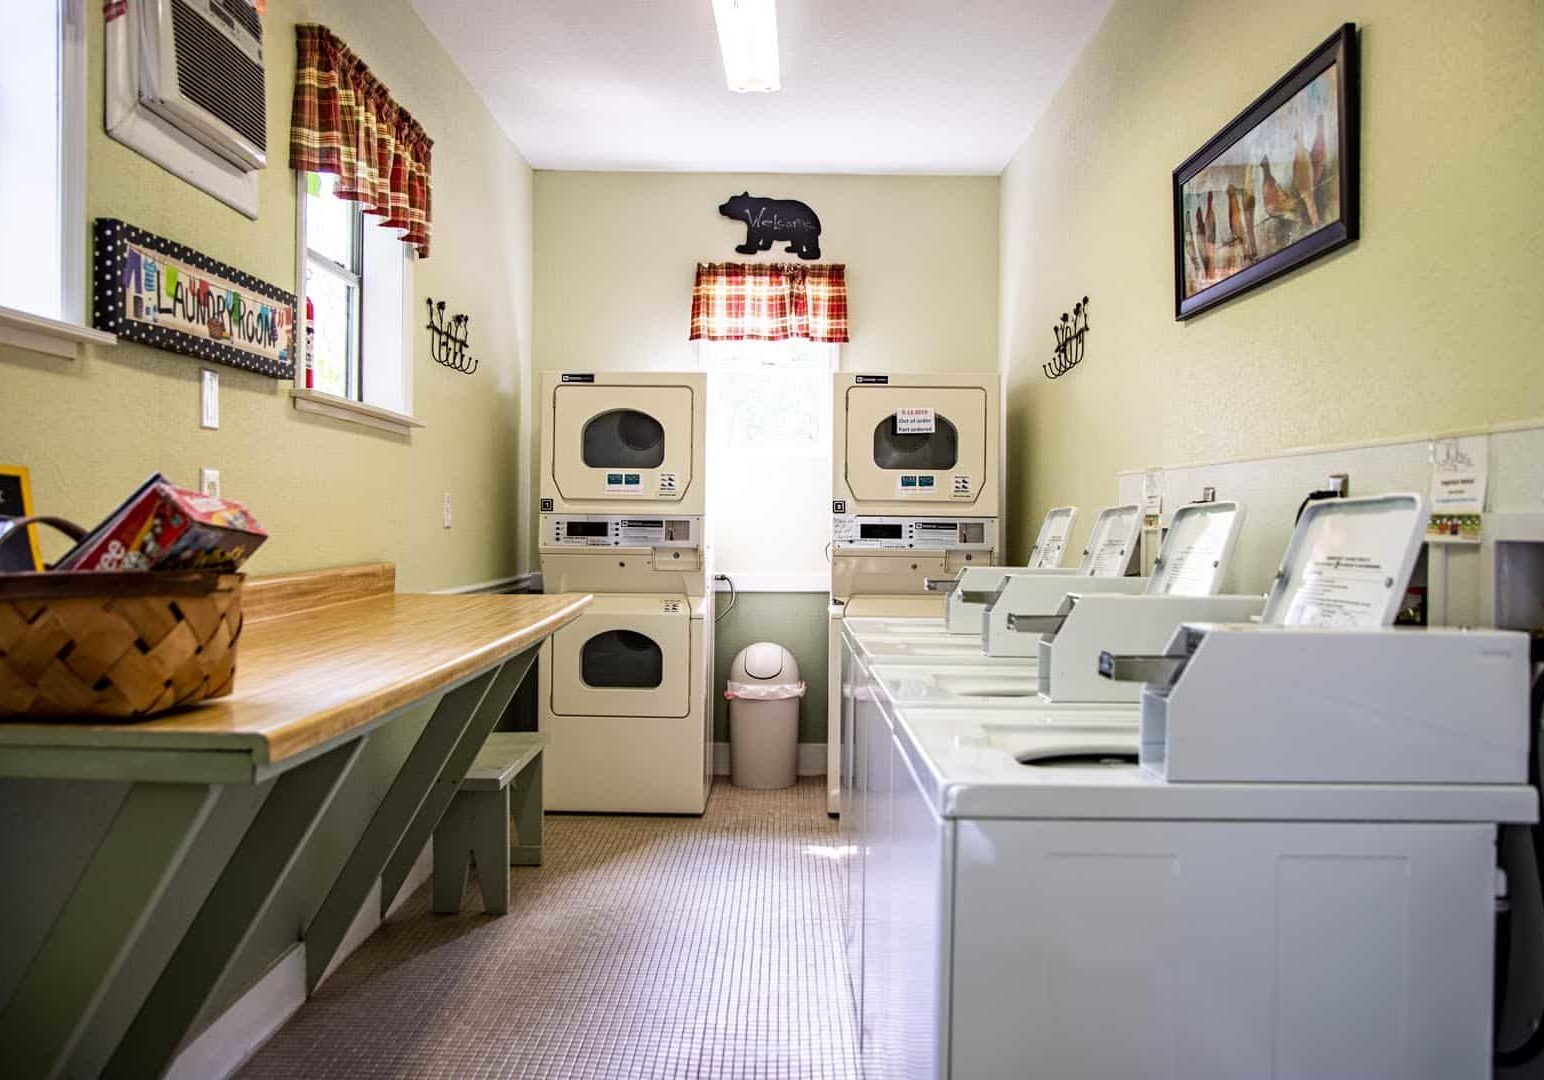 Climate controlled laundry room